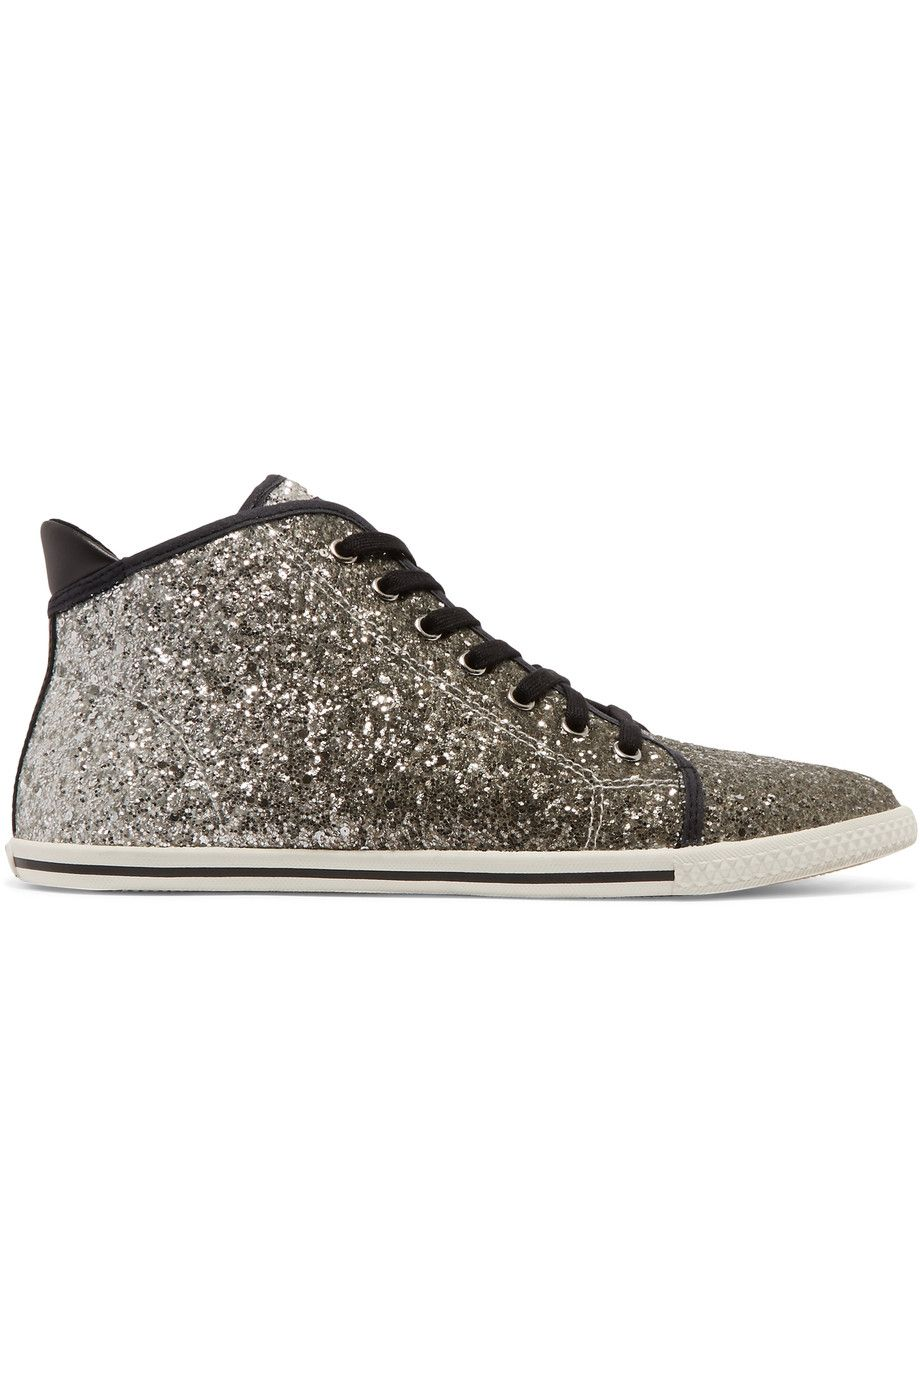 Marc By Marc Jacobs Woman Glittered Canvas Sneakers Black Size 38 Marc Jacobs gW0rAUB